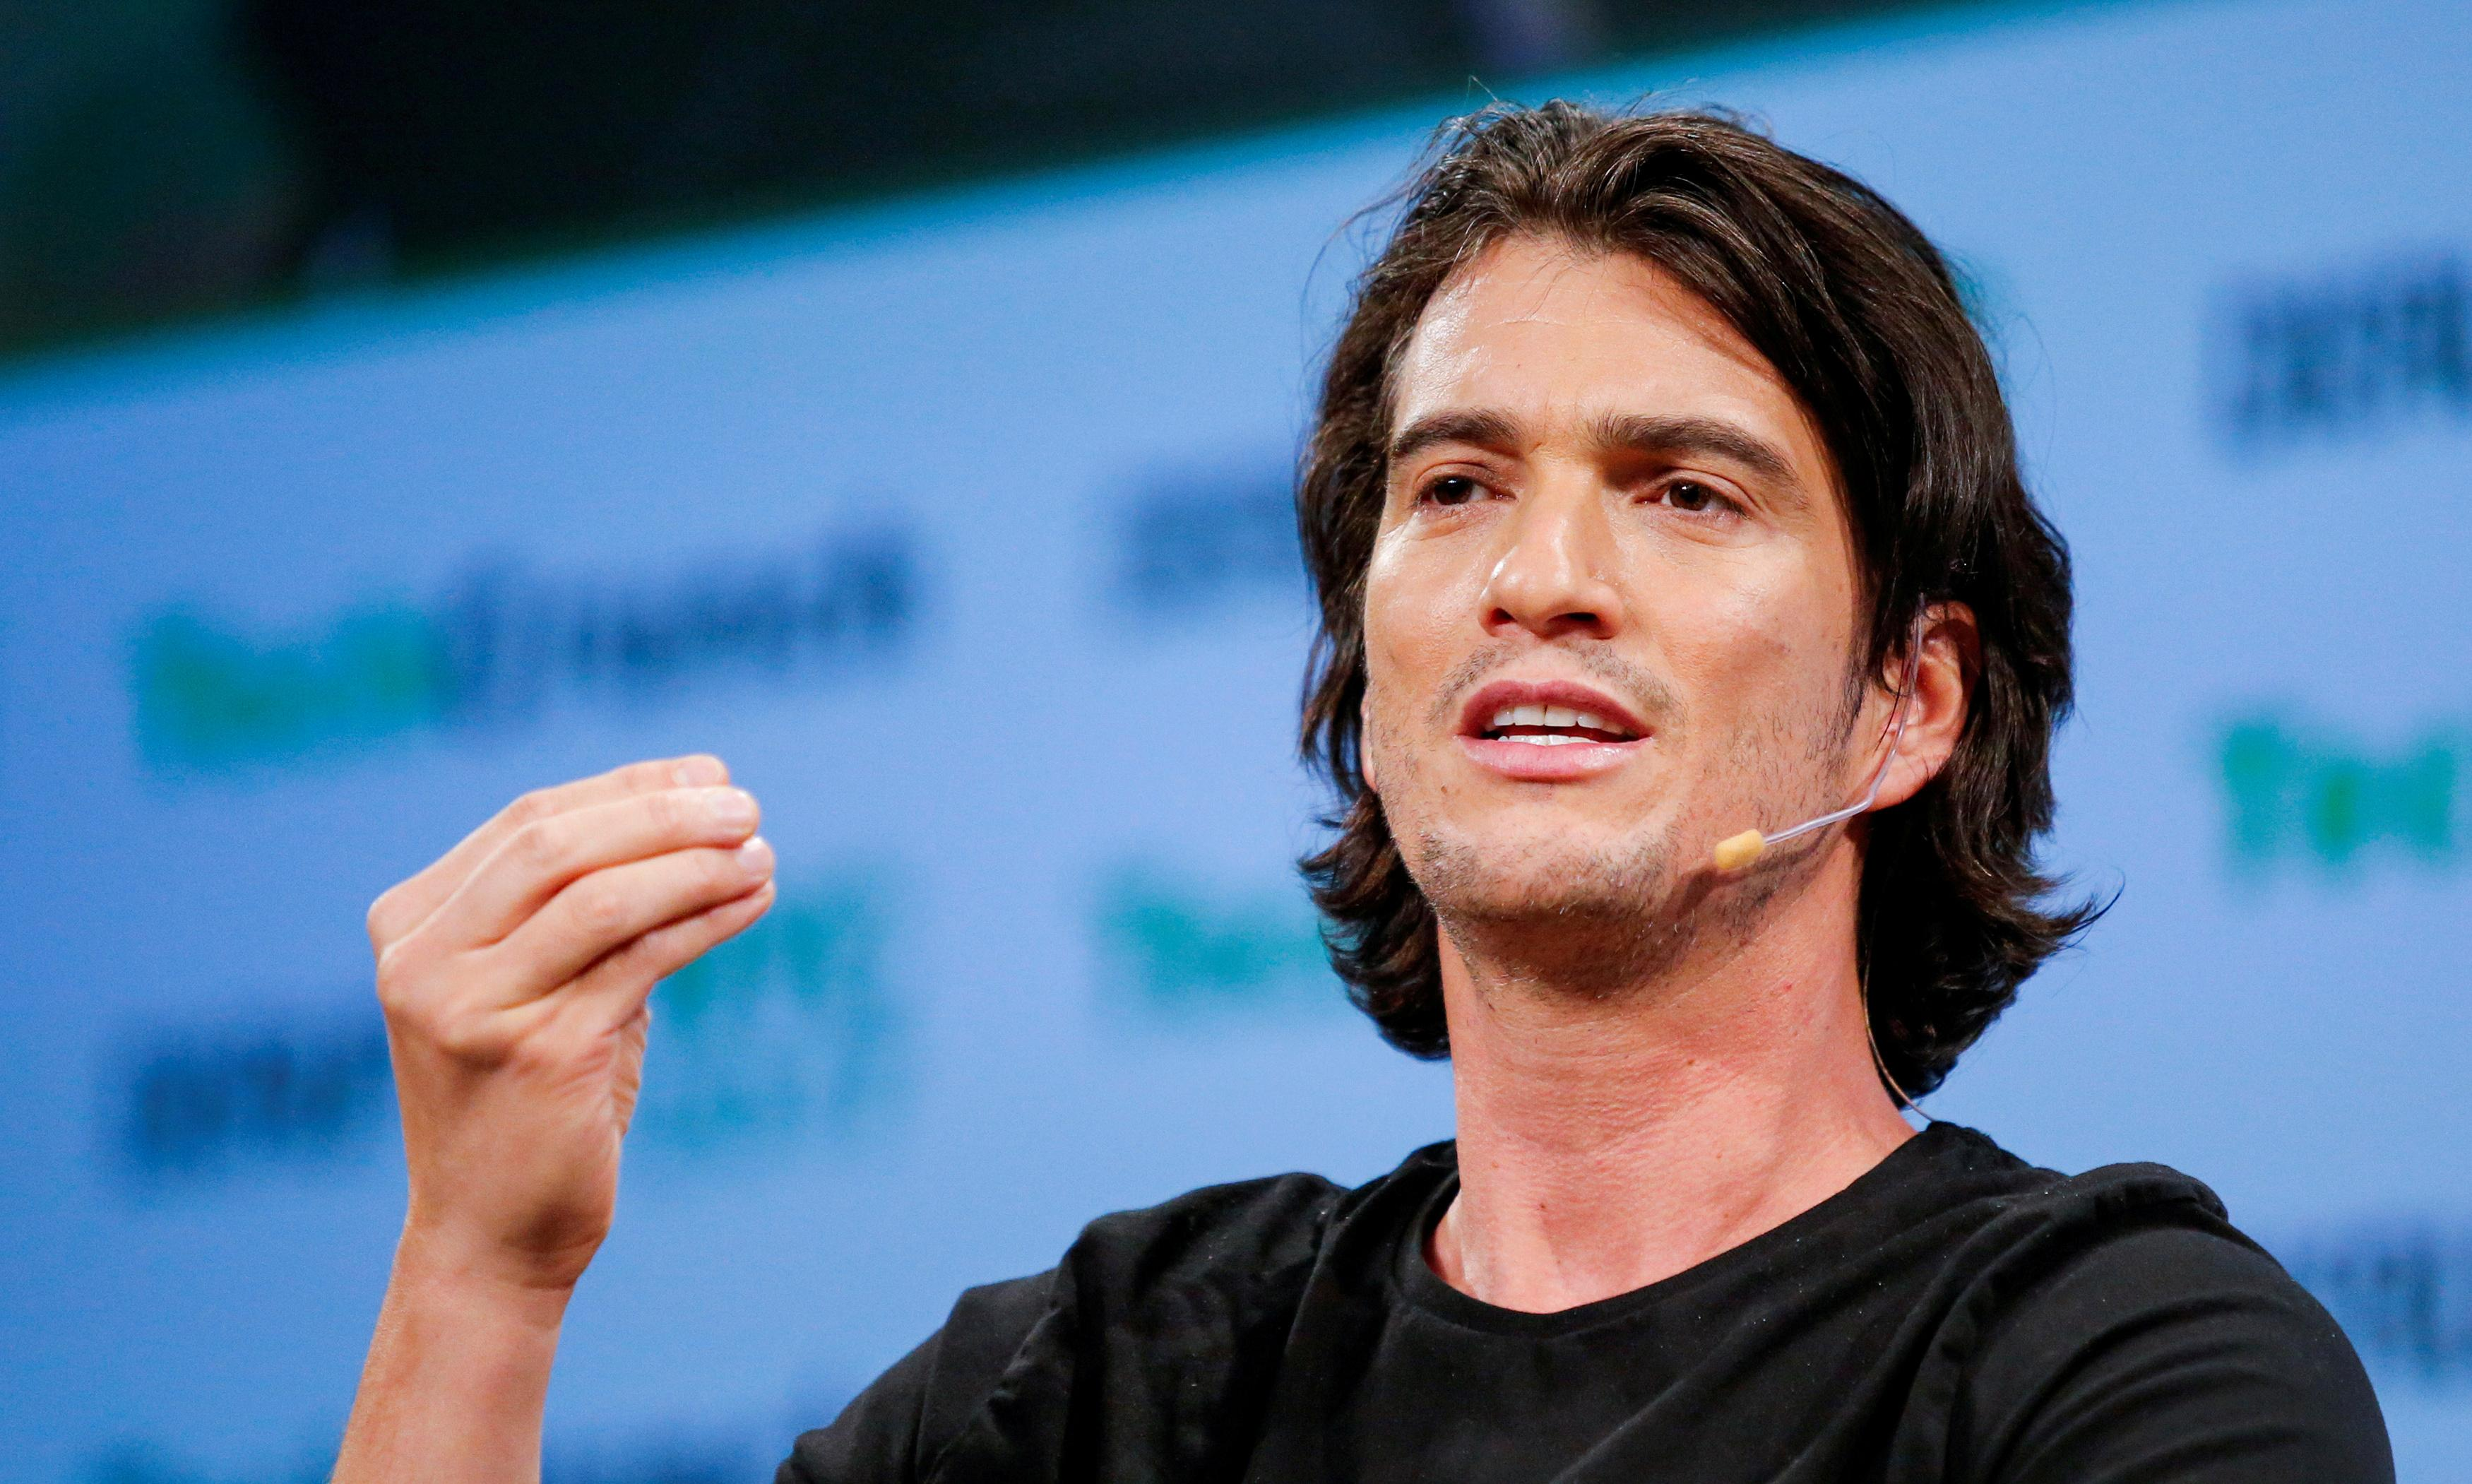 WeWork and Adam Neumann represent all that is wrong with the business world